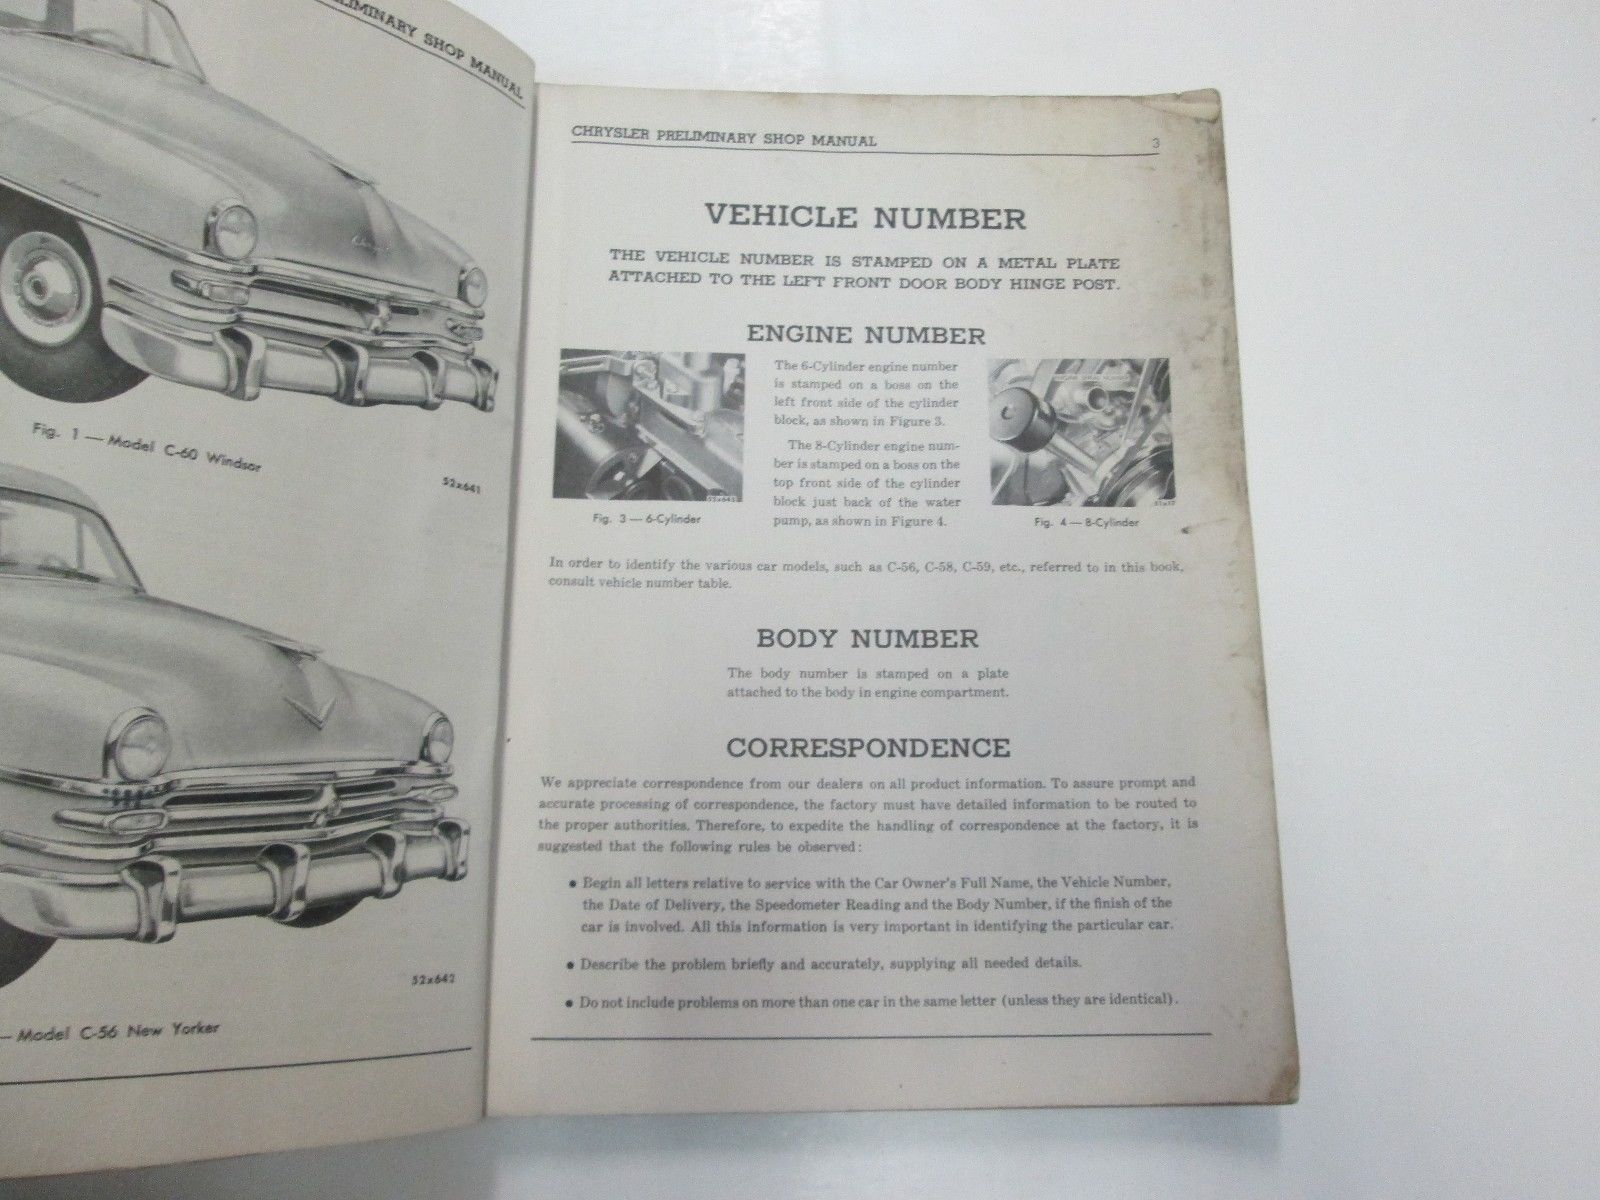 1953 Chrysler Windsor New Yorker Imperial Crown Imperial Preliminary Shop Manual